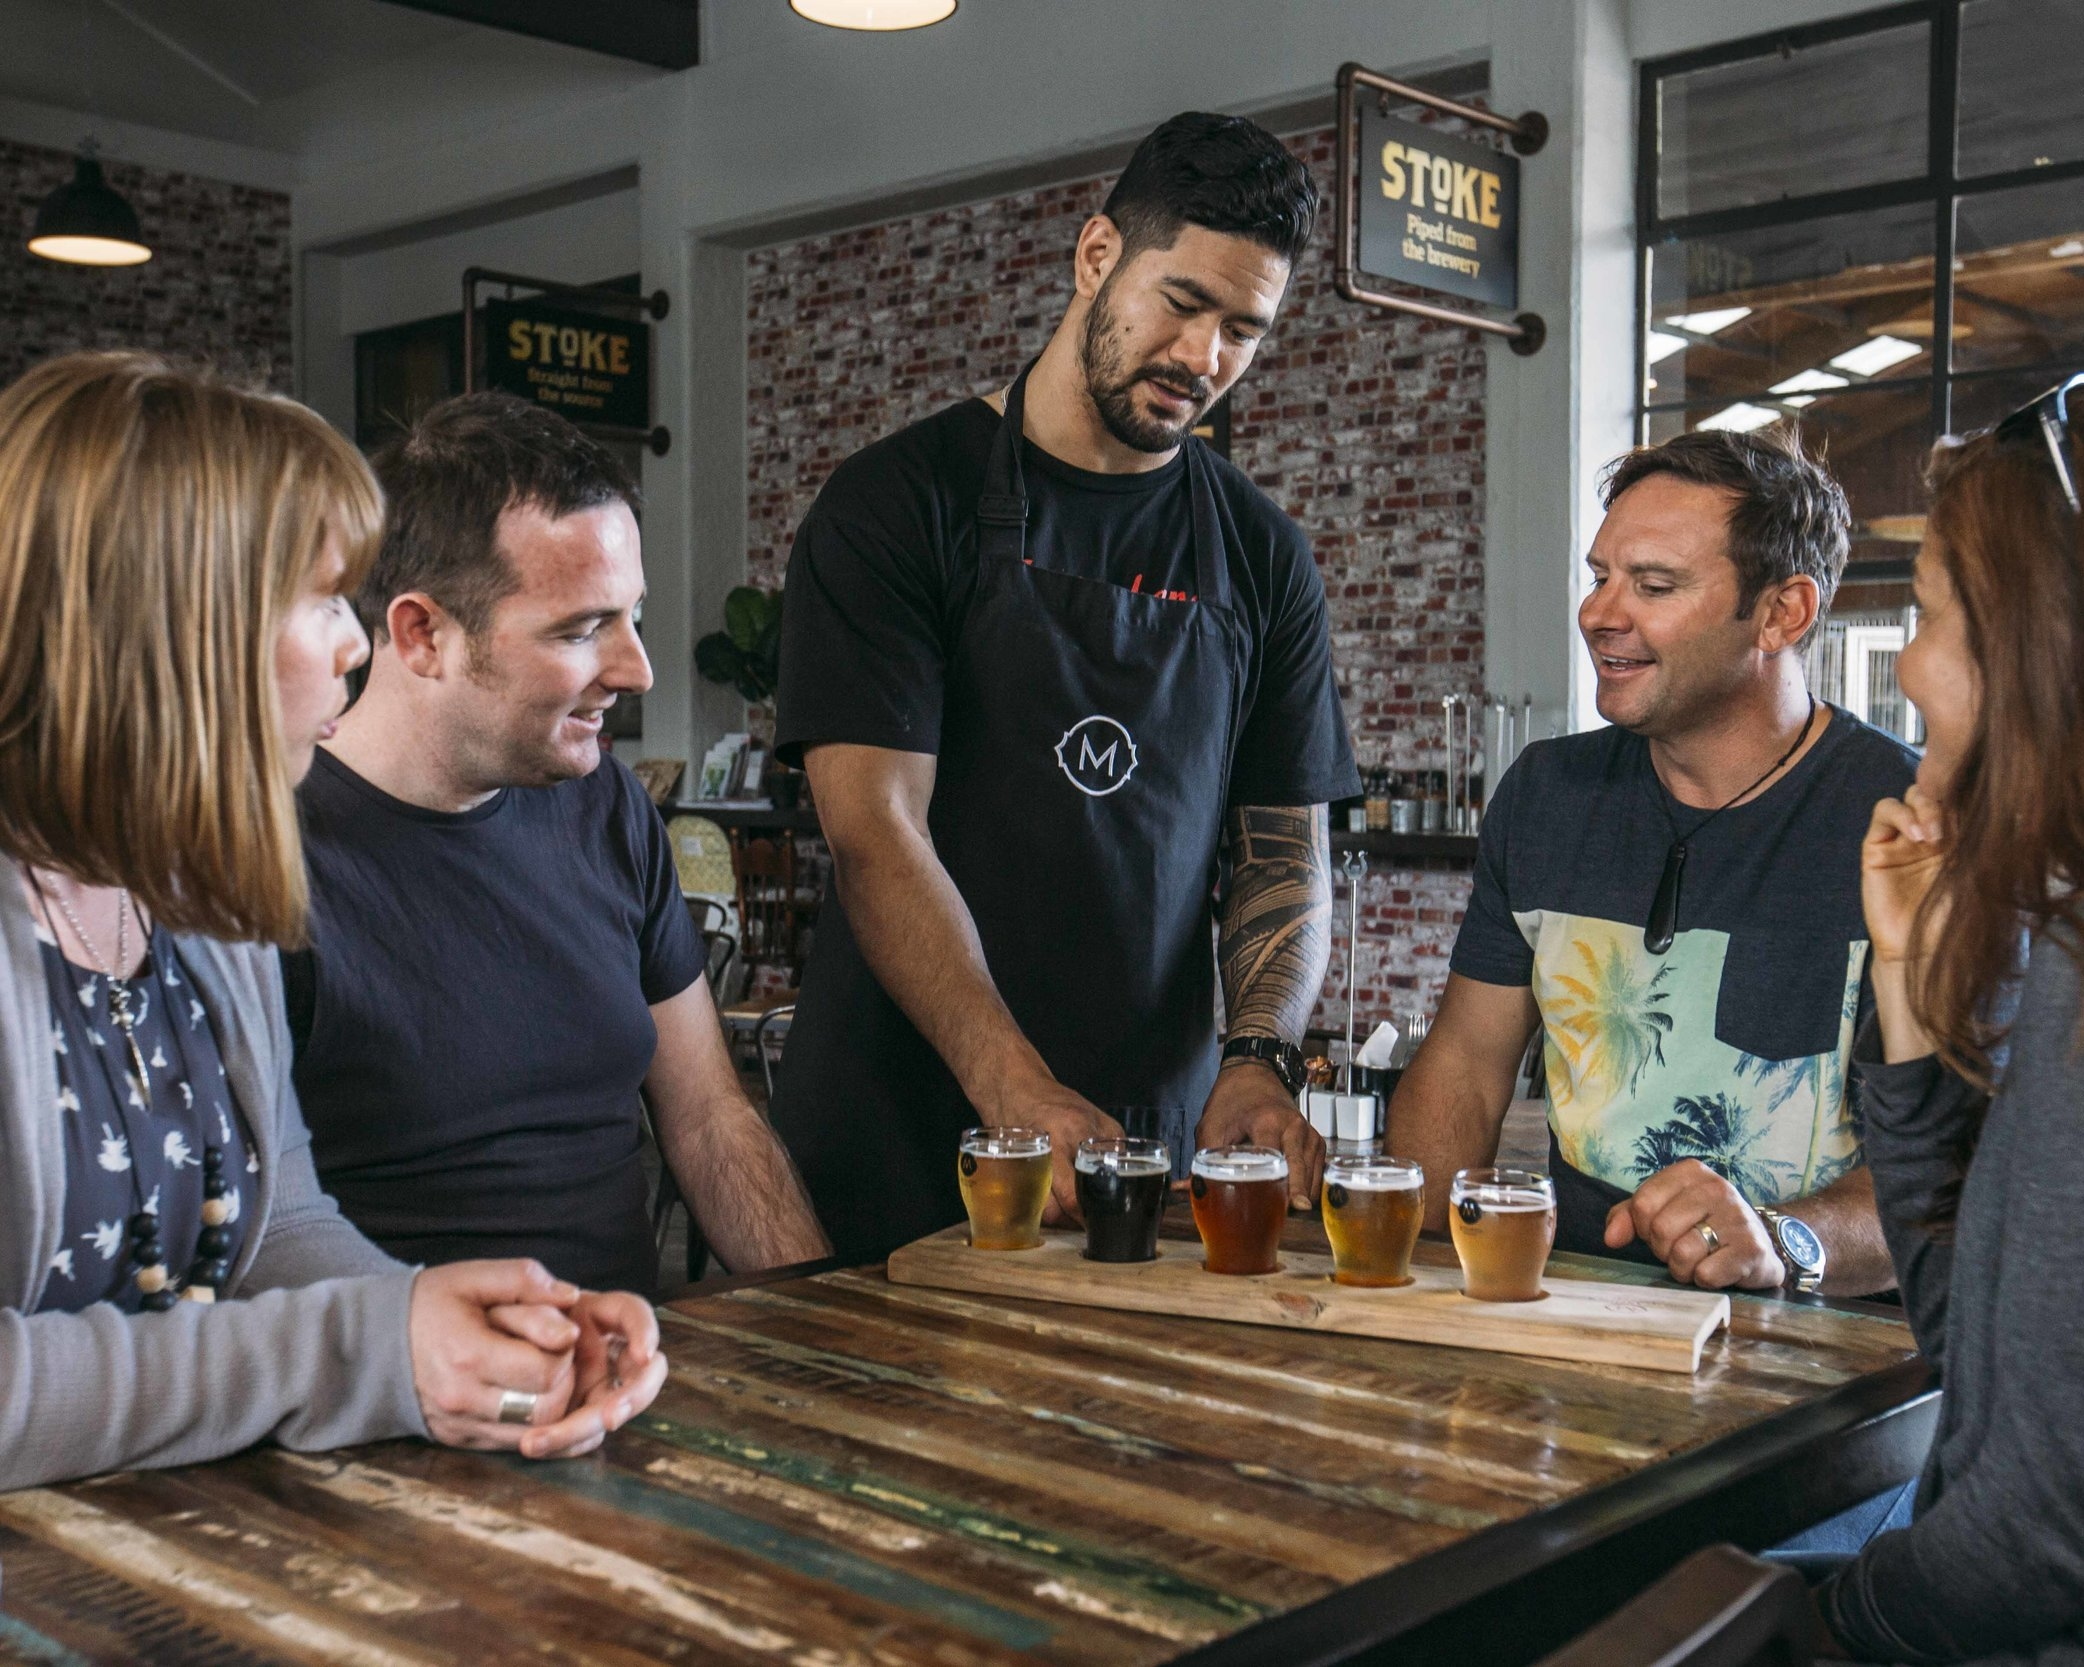 Great Taste Beer - Adult $75 NZDSelf-guided beer cycling package, visiting the breweries & pubs close to our base in Stoke. Door-to-door from Nelson.